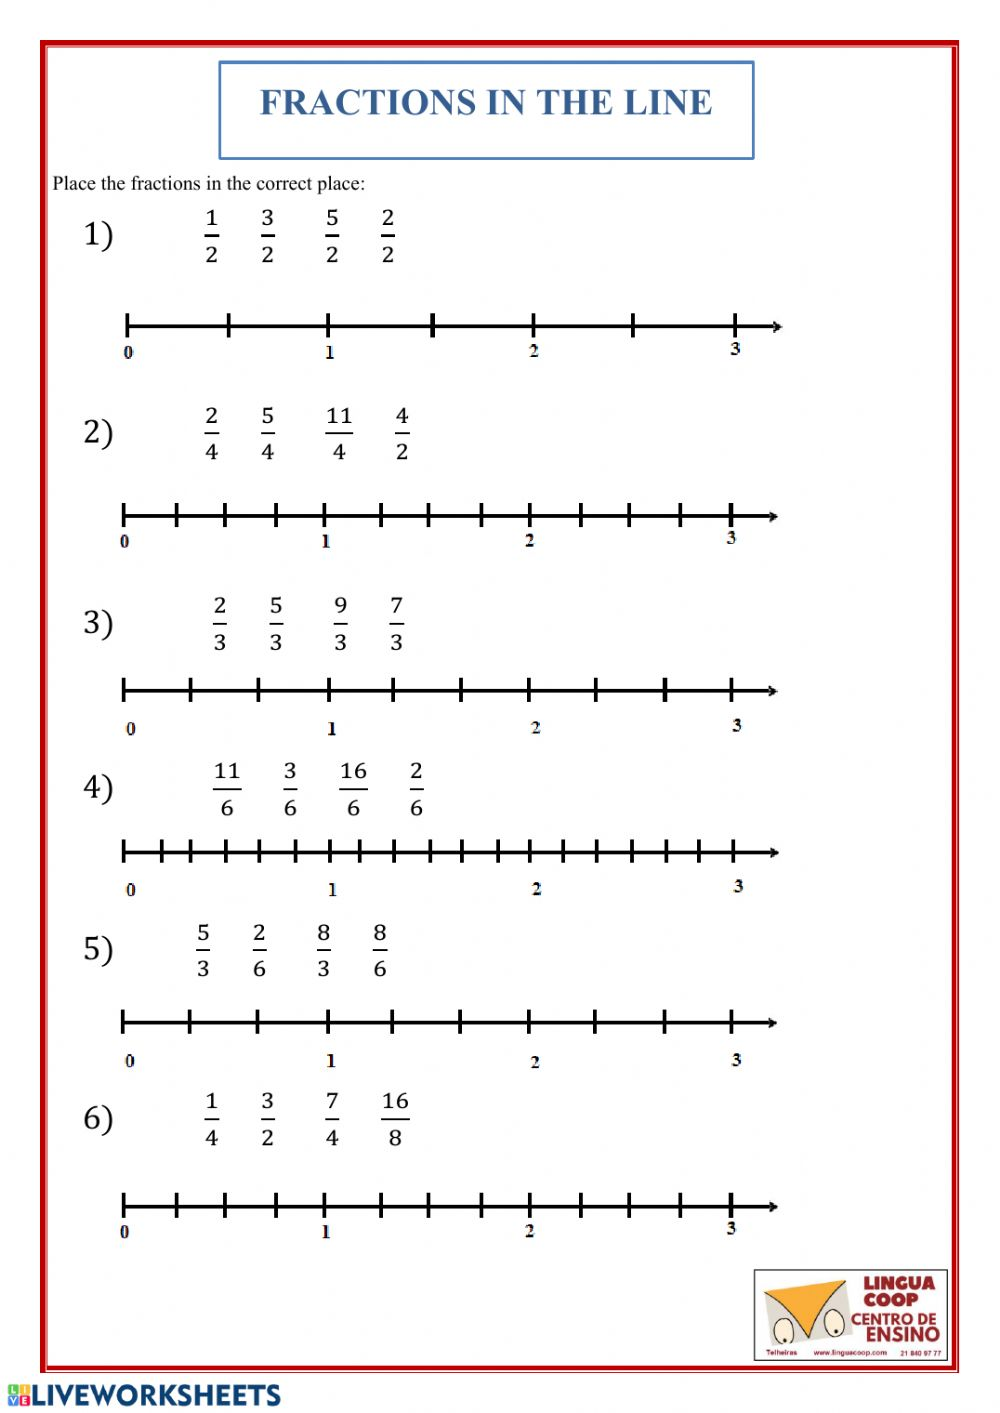 medium resolution of Fractions in the line worksheet